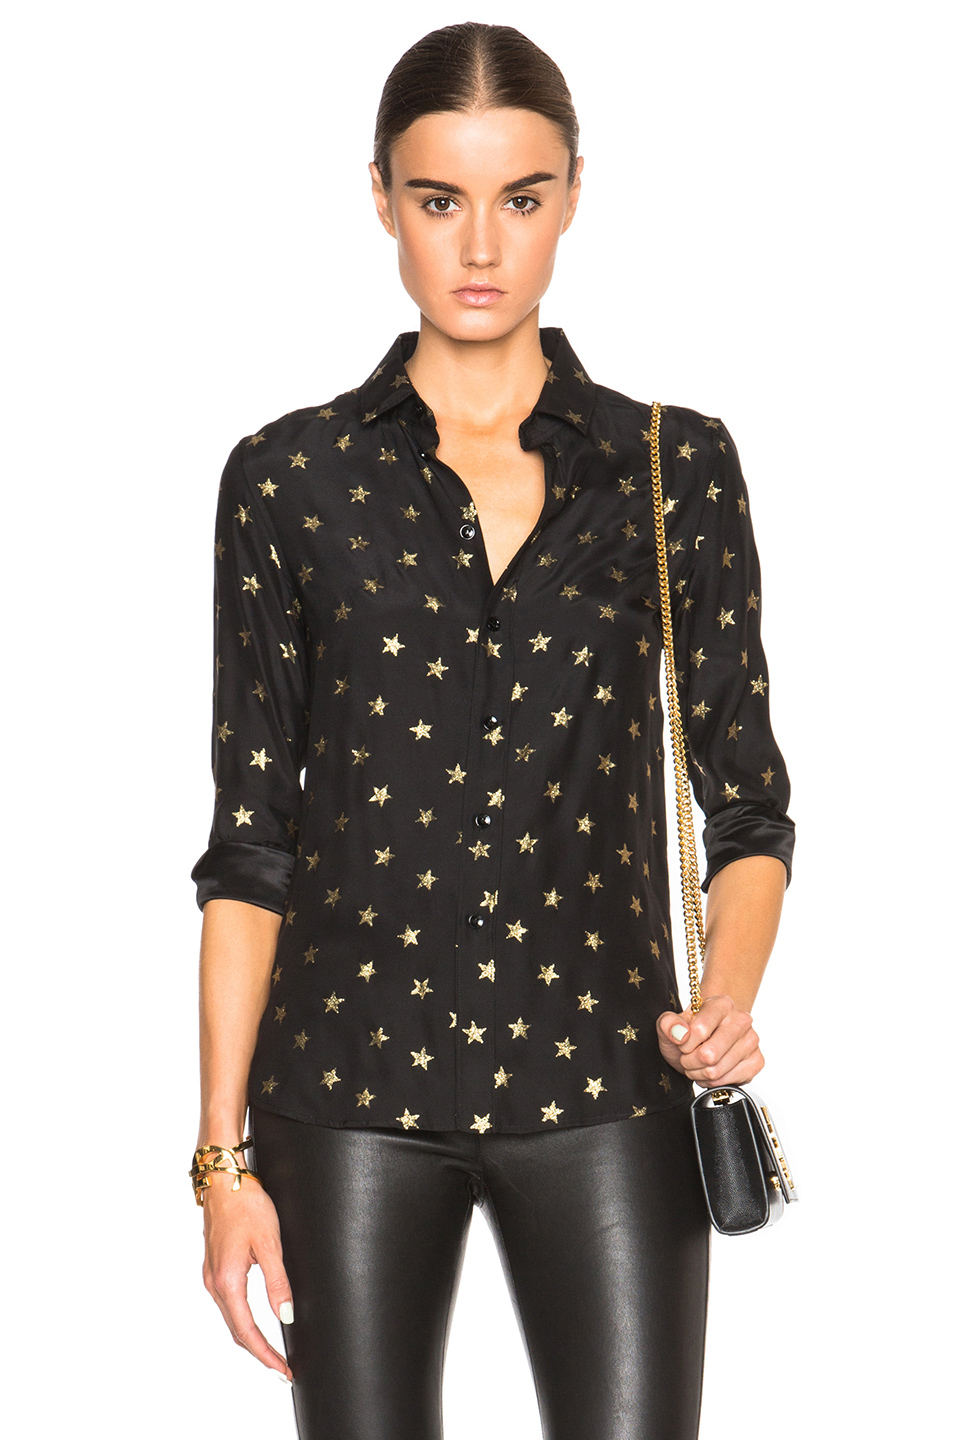 Collection Black And Gold Blouse Pictures - Reikian